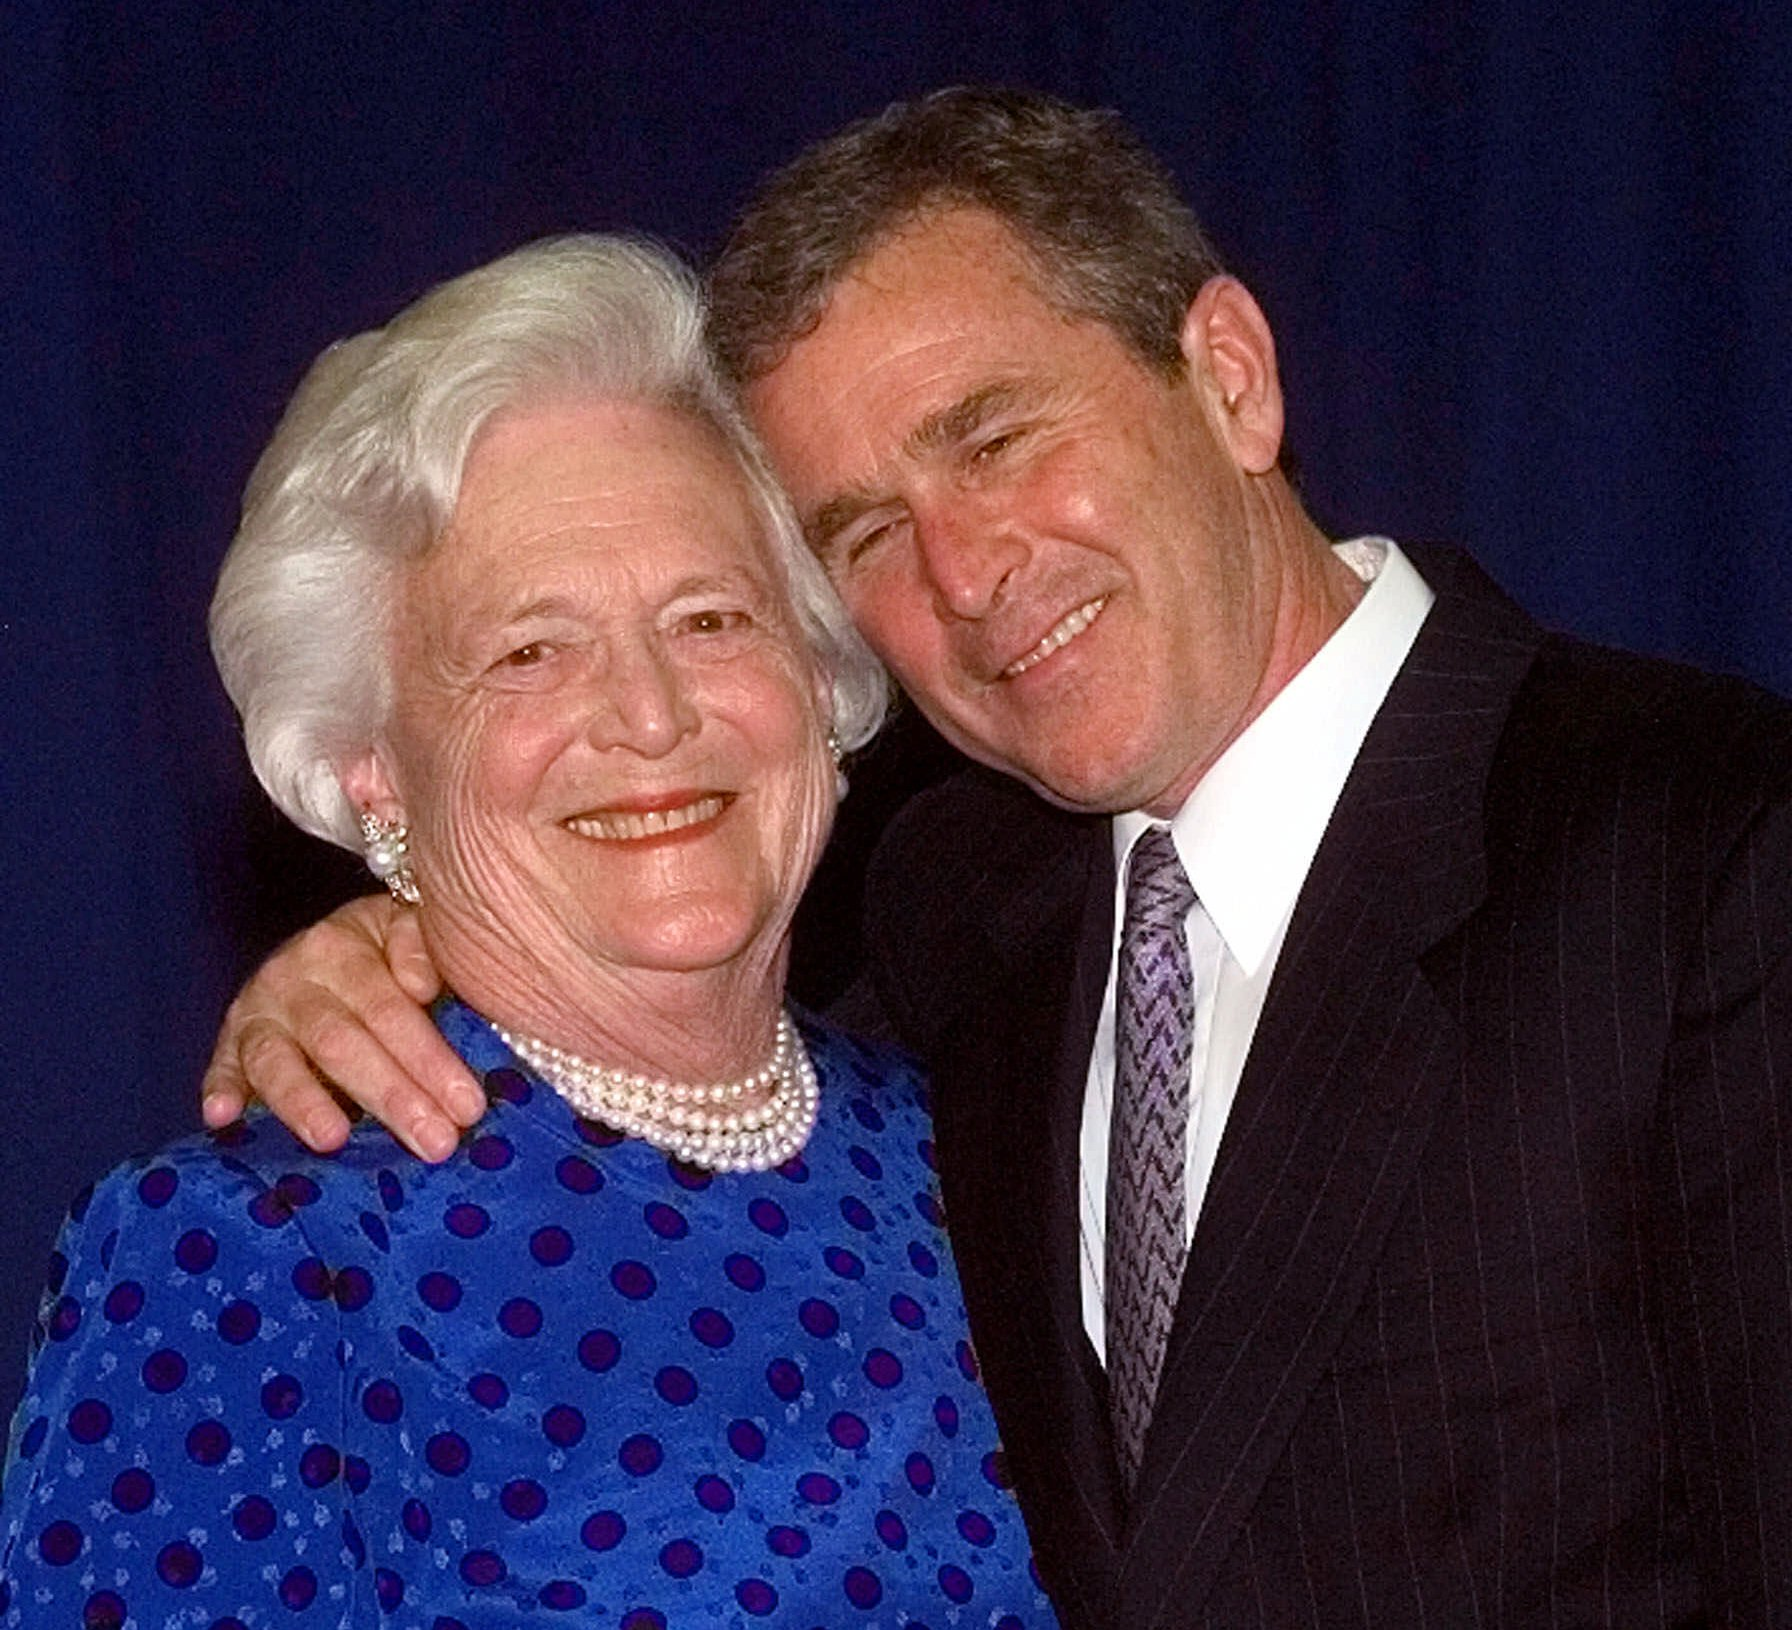 The then Texas Gov. George W. Bush, right, gives his mother, Barbara Bush , a hug after taking a family photo Thursday, June 10, 1999 in Houston.